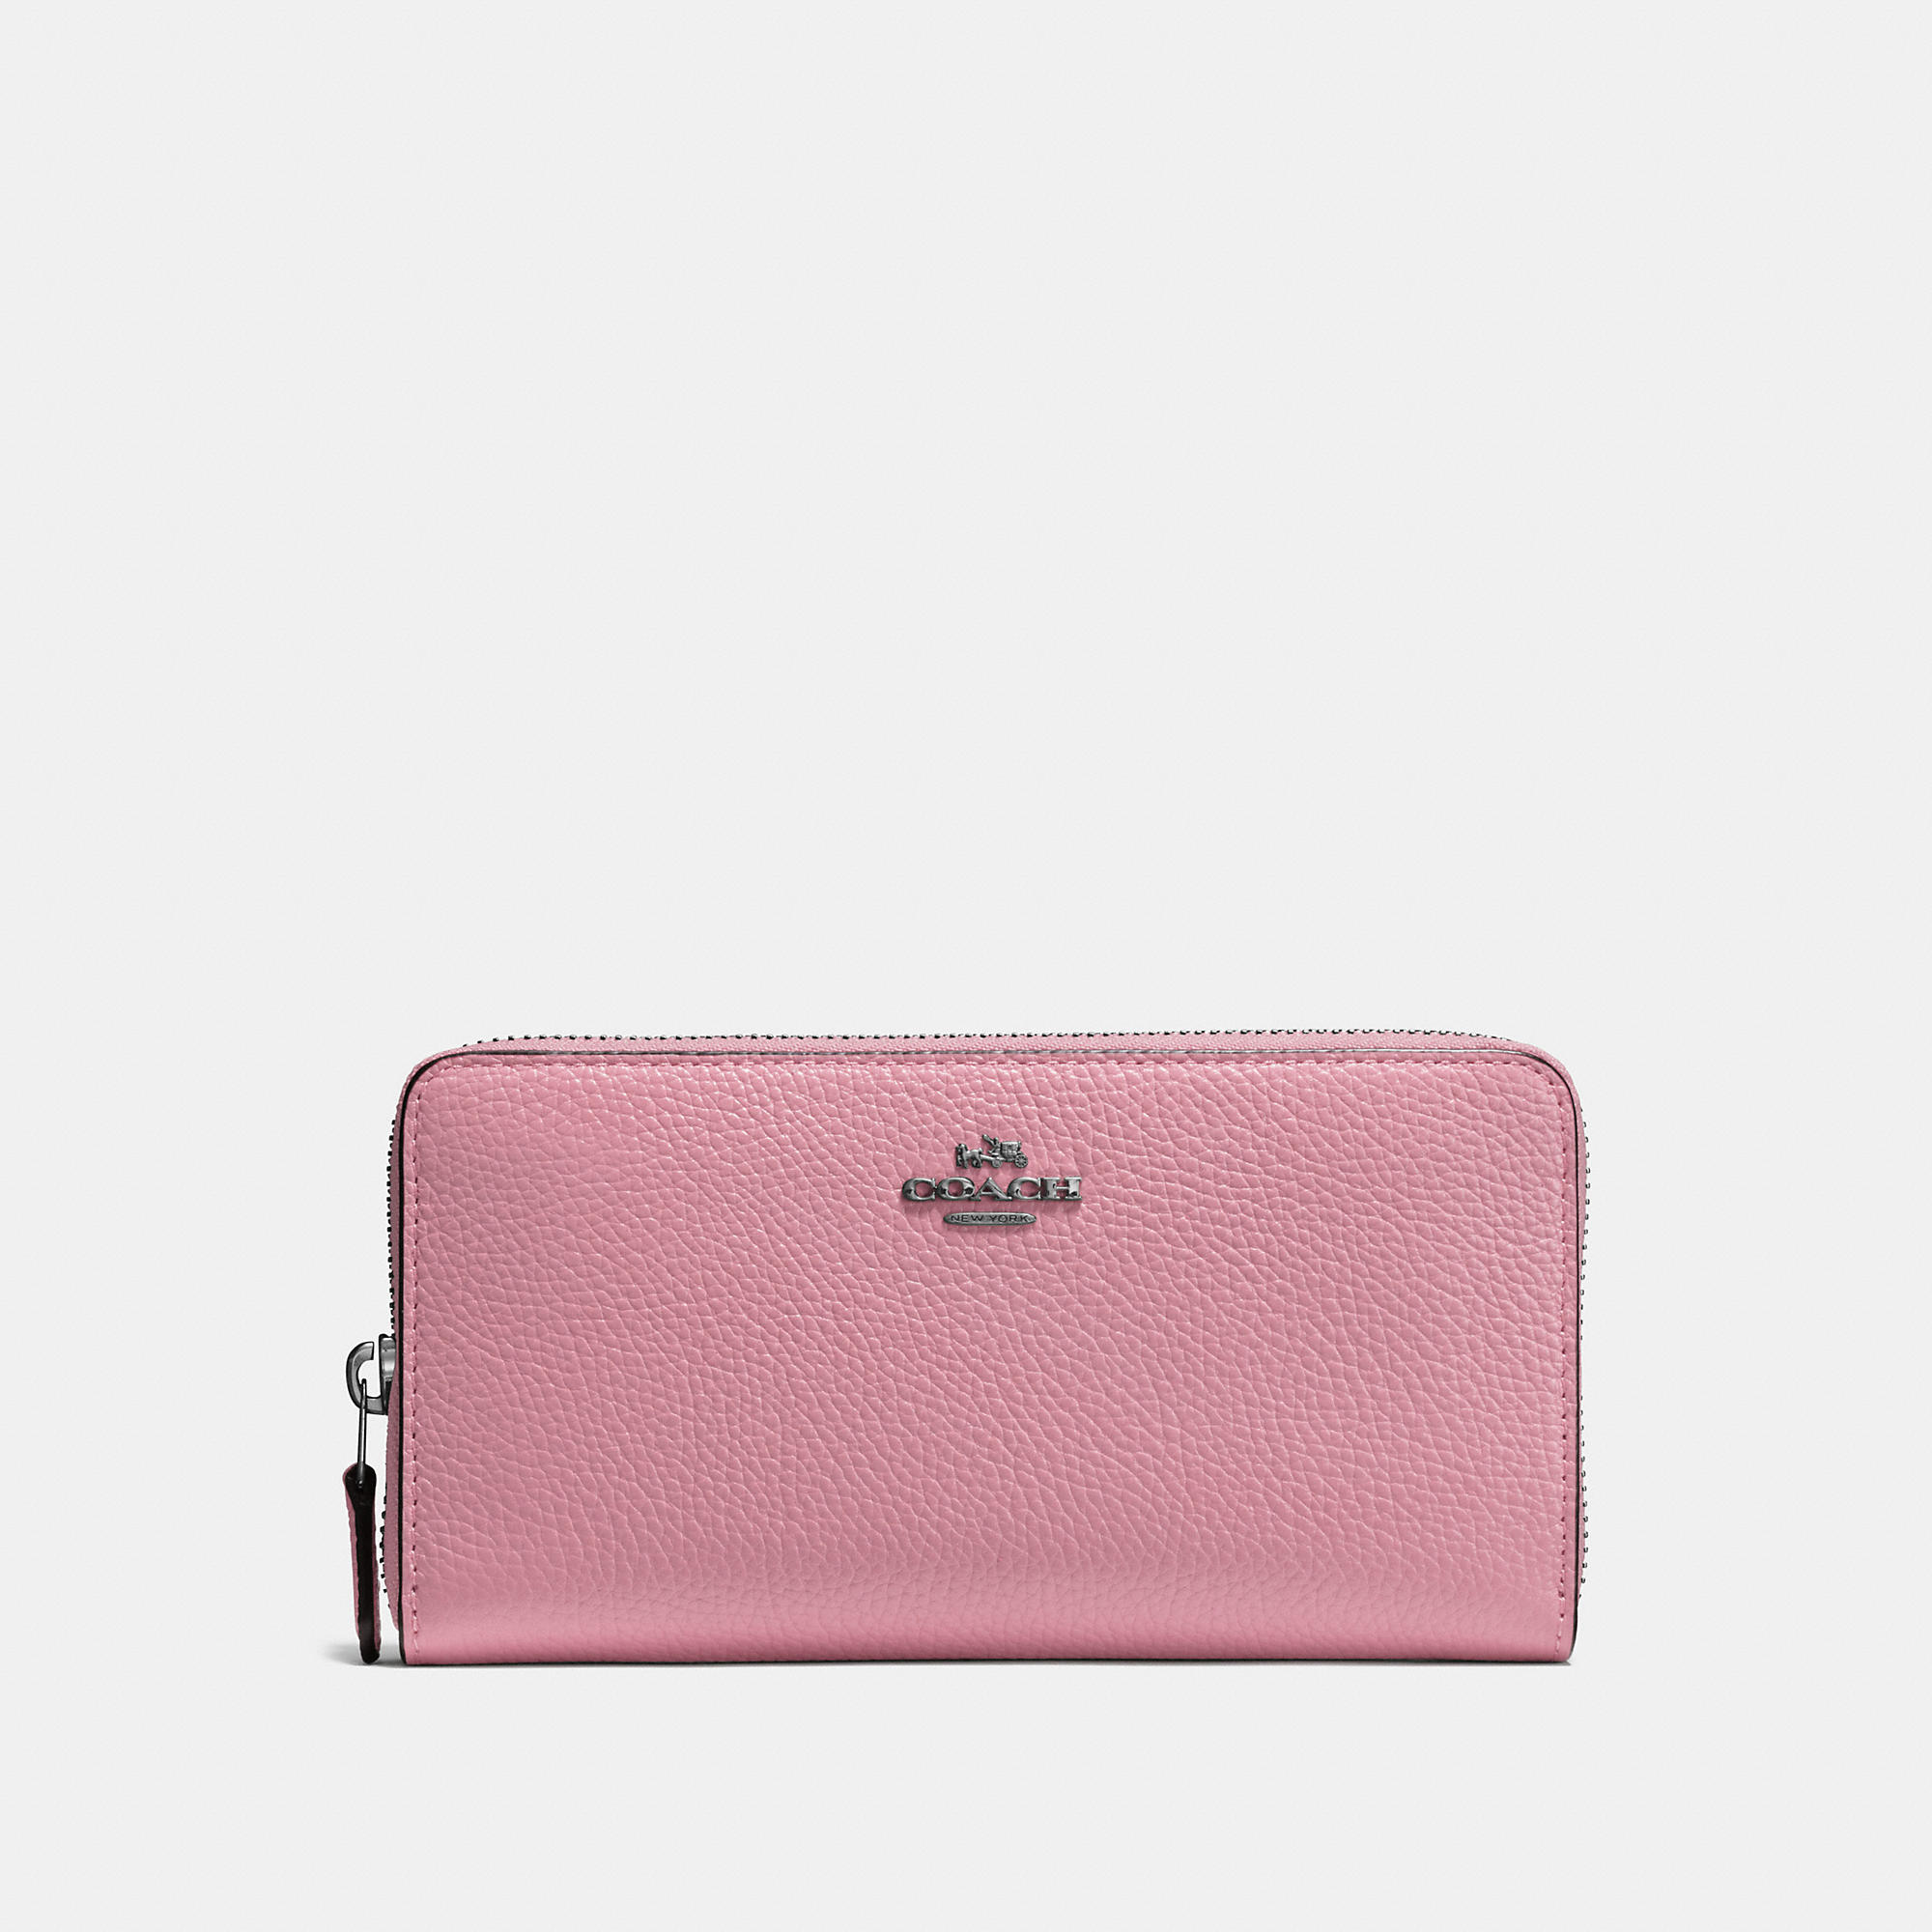 Coach Accordion Zip Wallet In Polished Pebble Leather